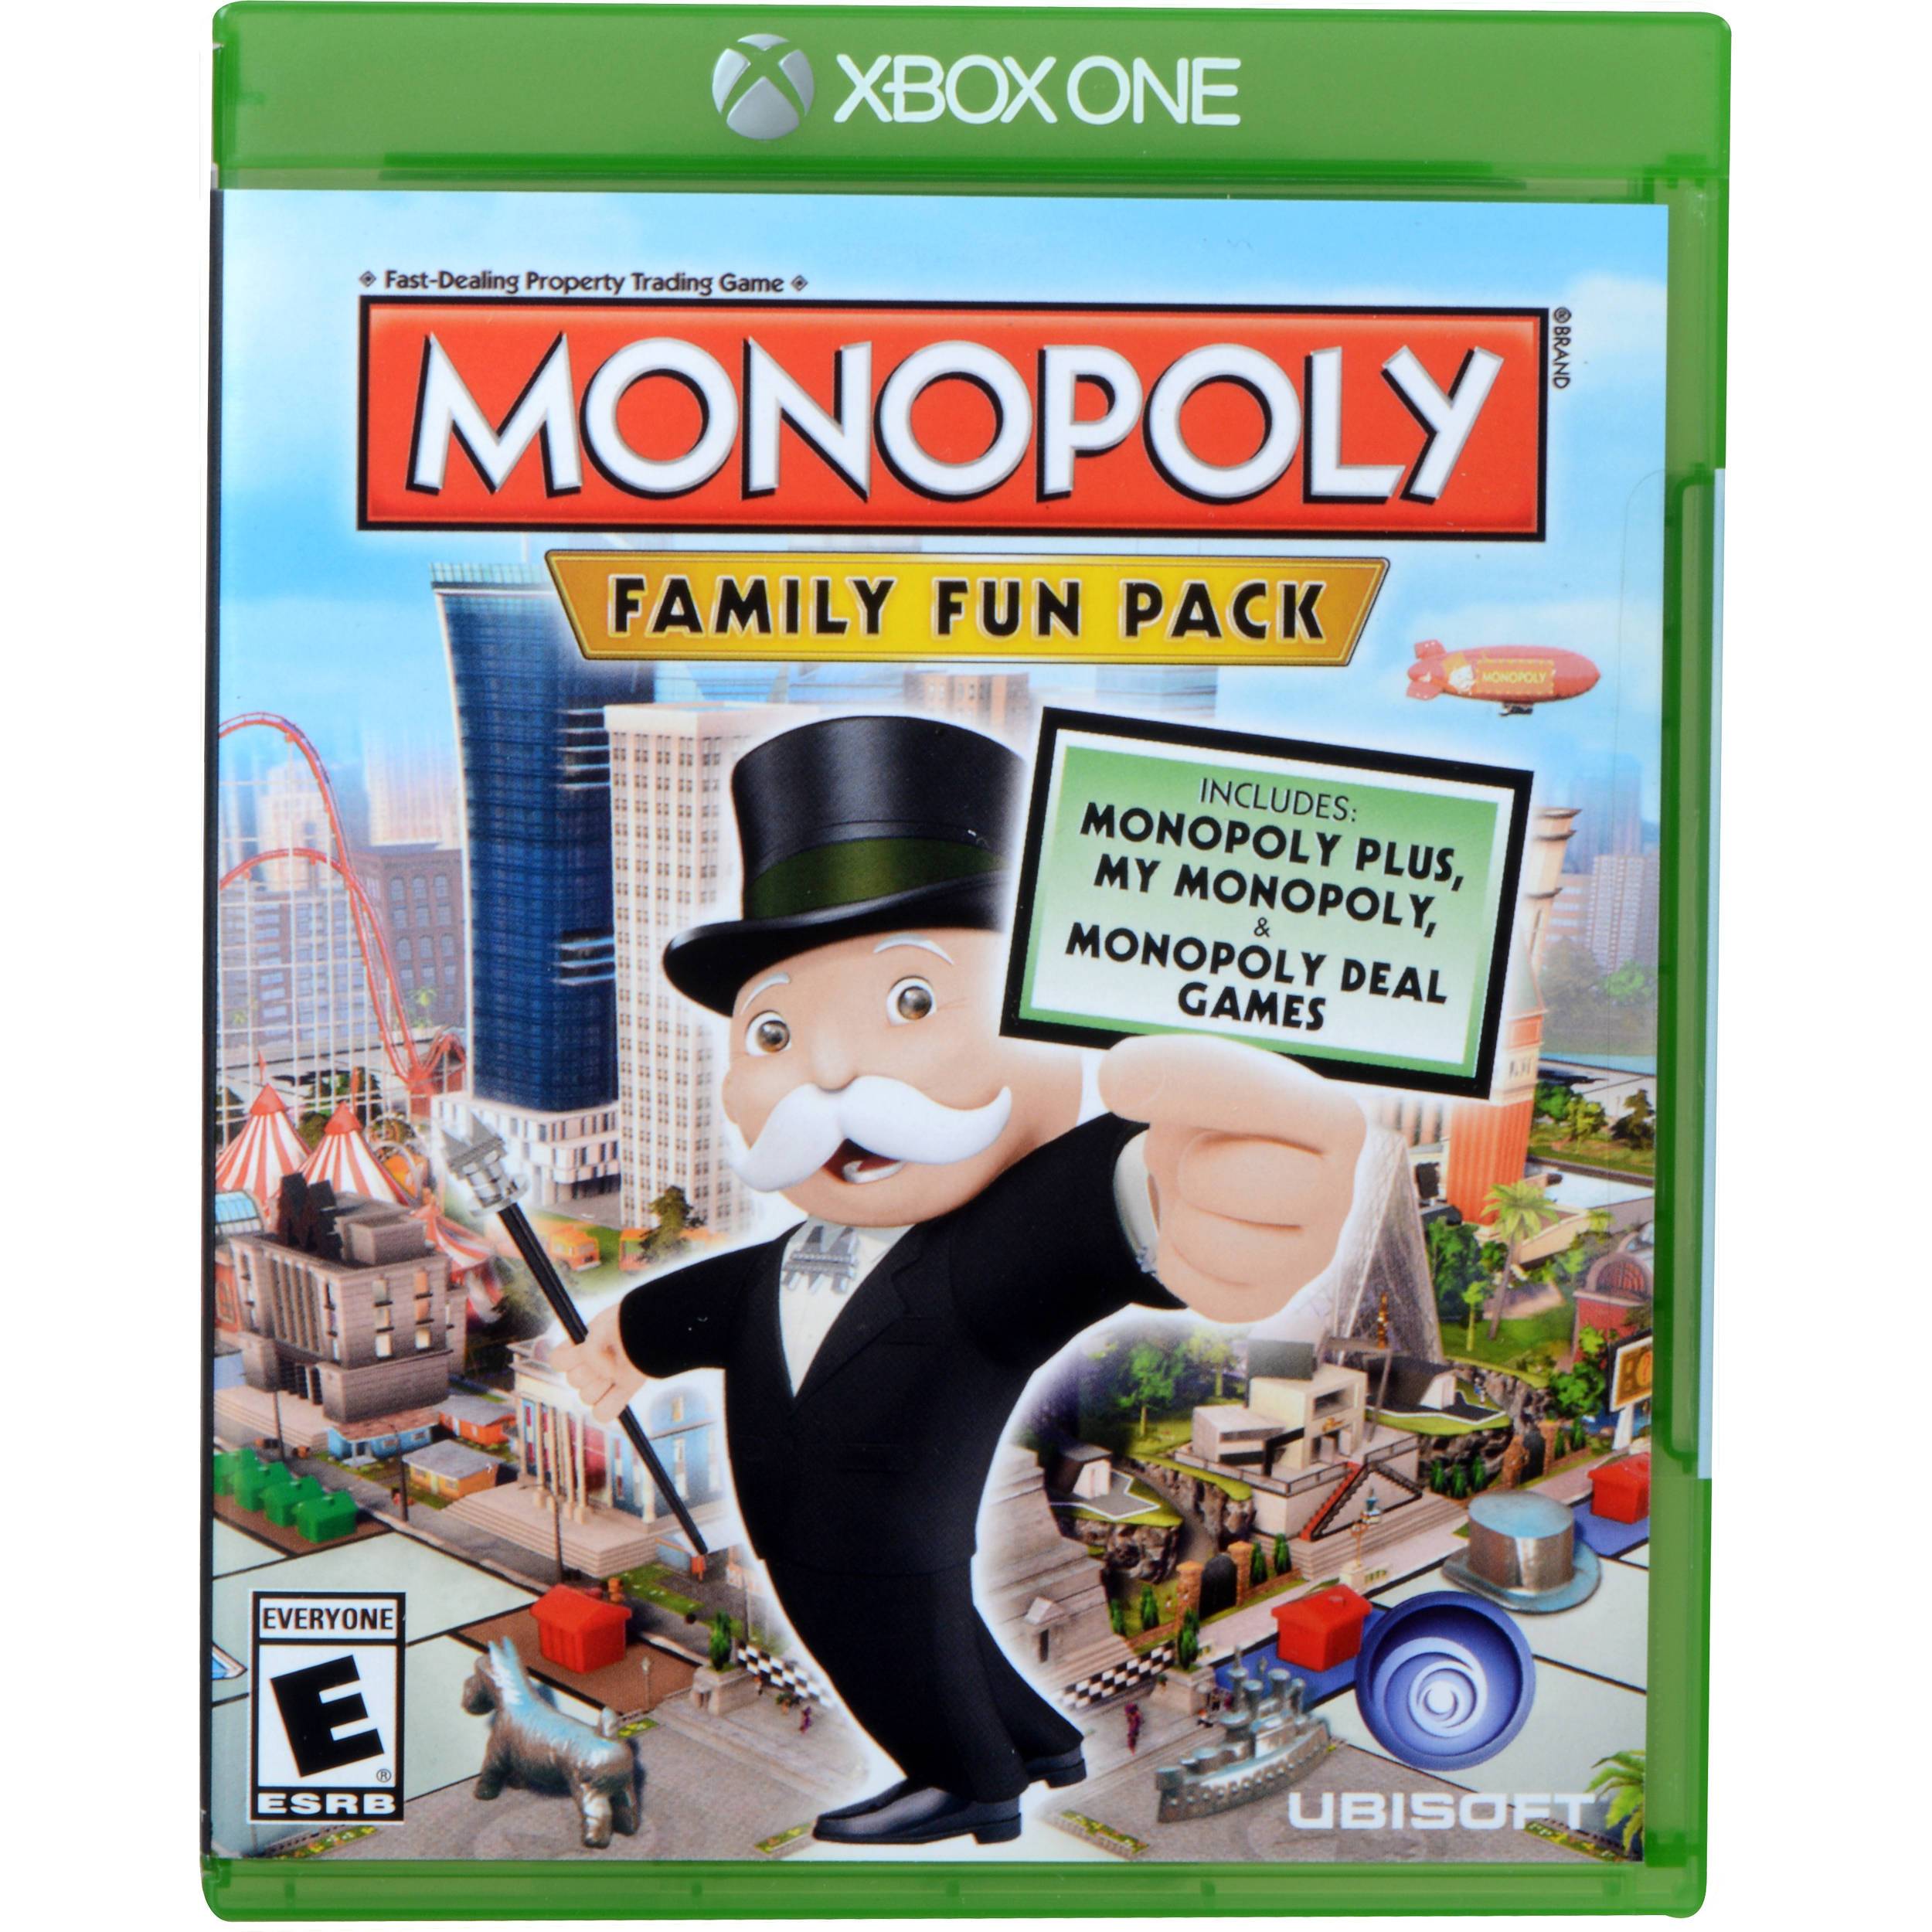 Monopoly Game For Xbox 1 : Ubisoft monopoly family fun pack xbox one ubp b h